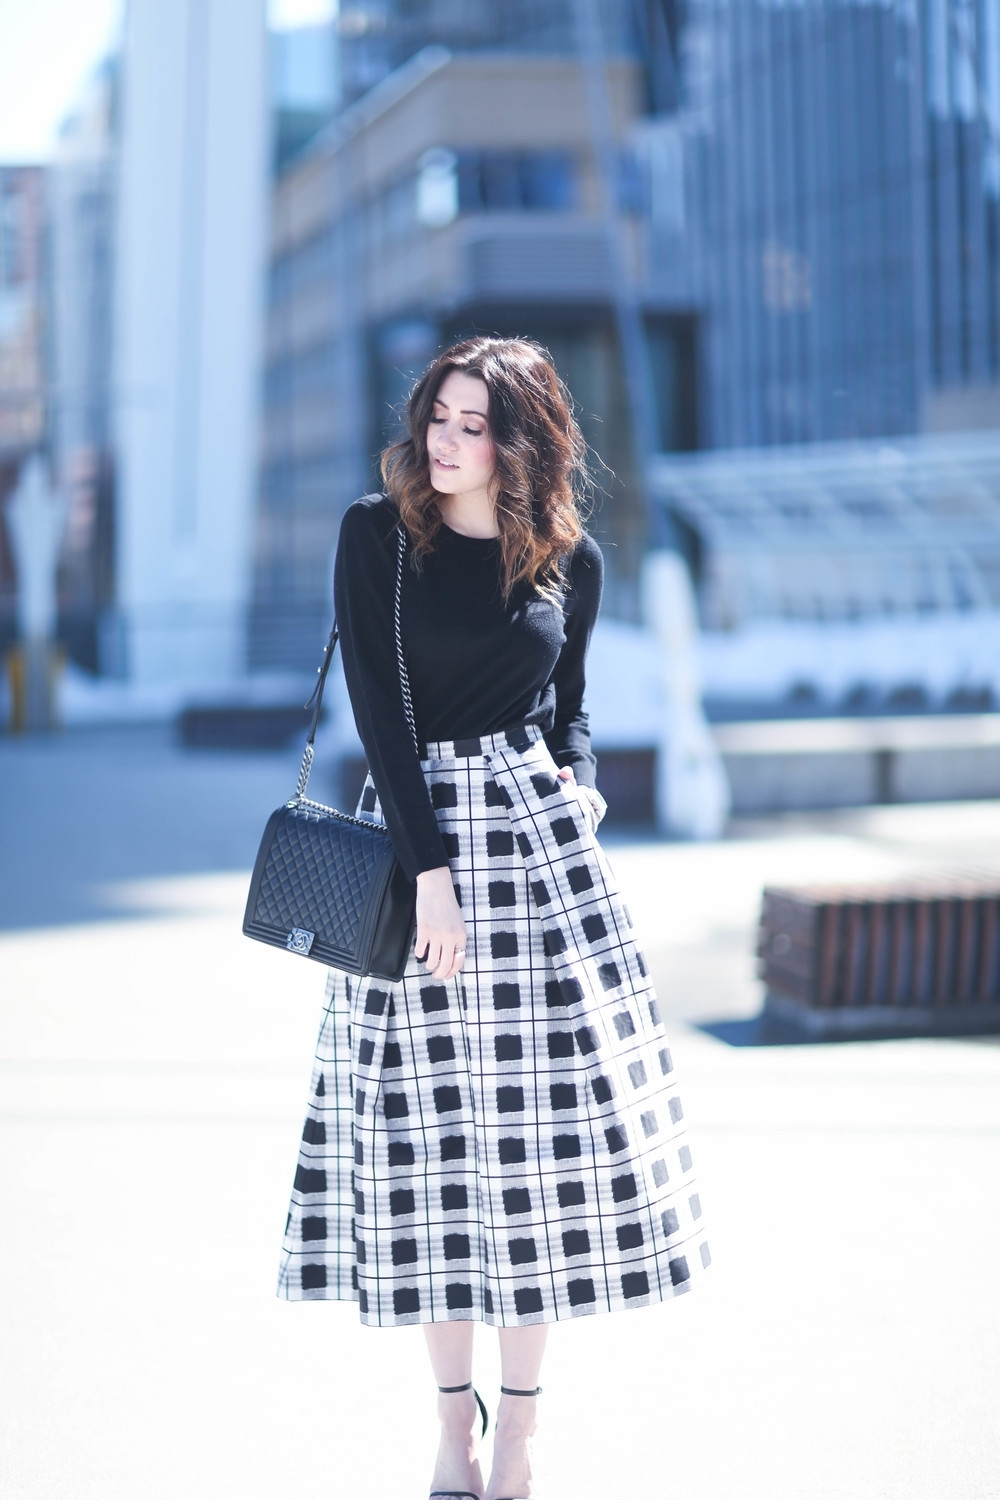 10 Unique Black And White Outfit Ideas %name 2021